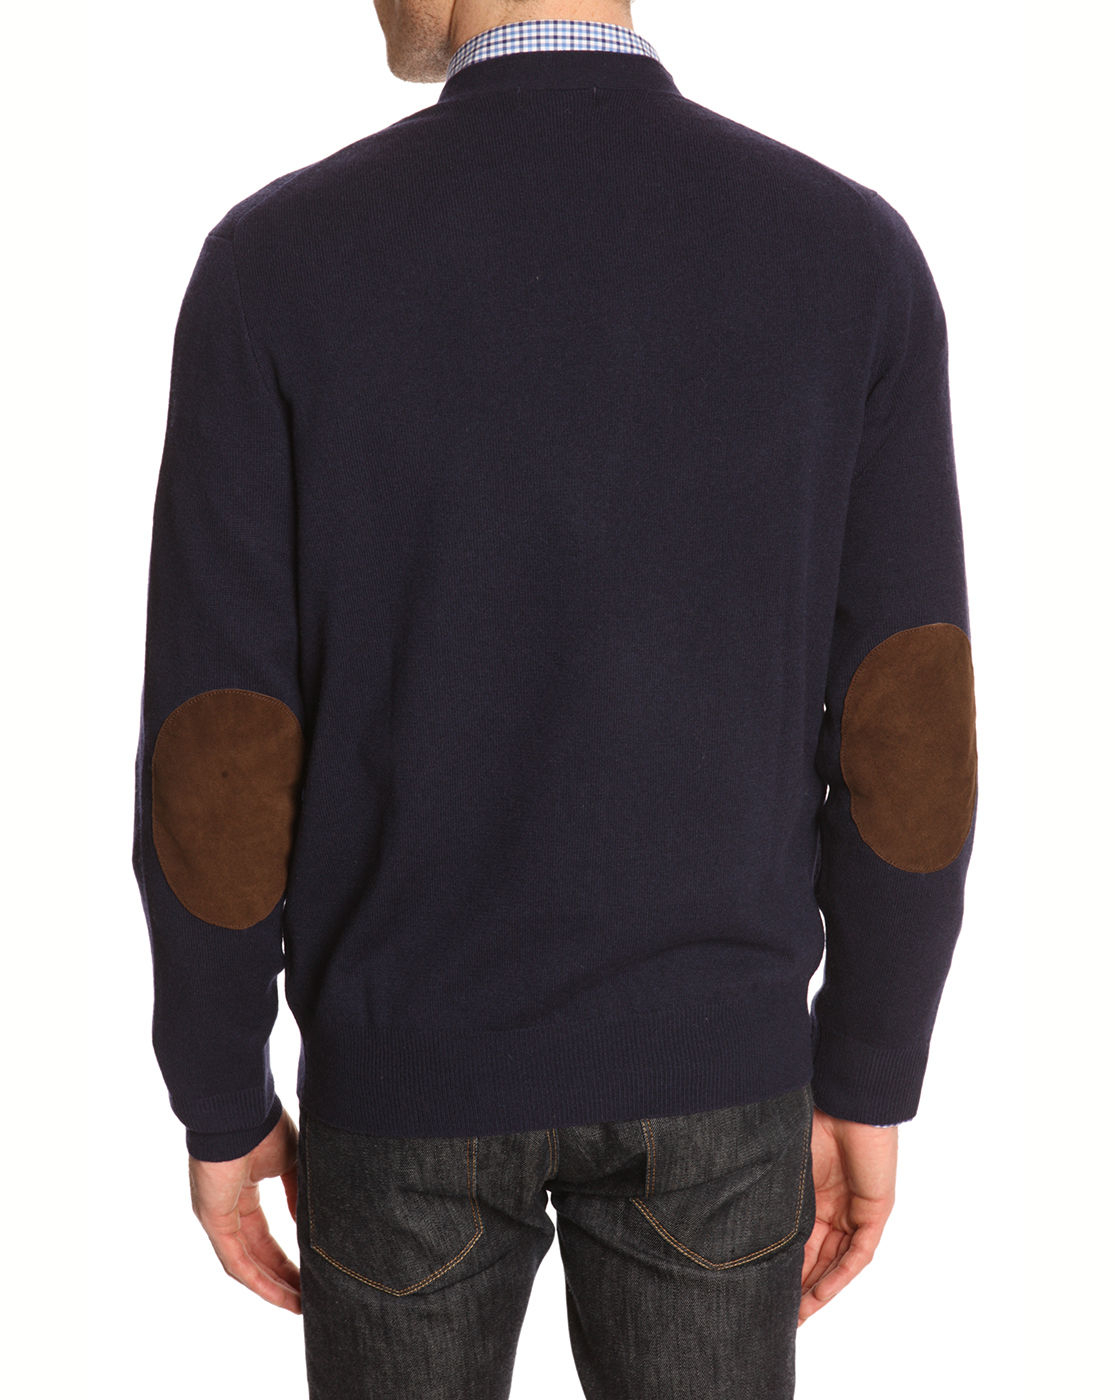 Men's Fashion & Style * Sweaters with Elbow Patches (Page 1 ...